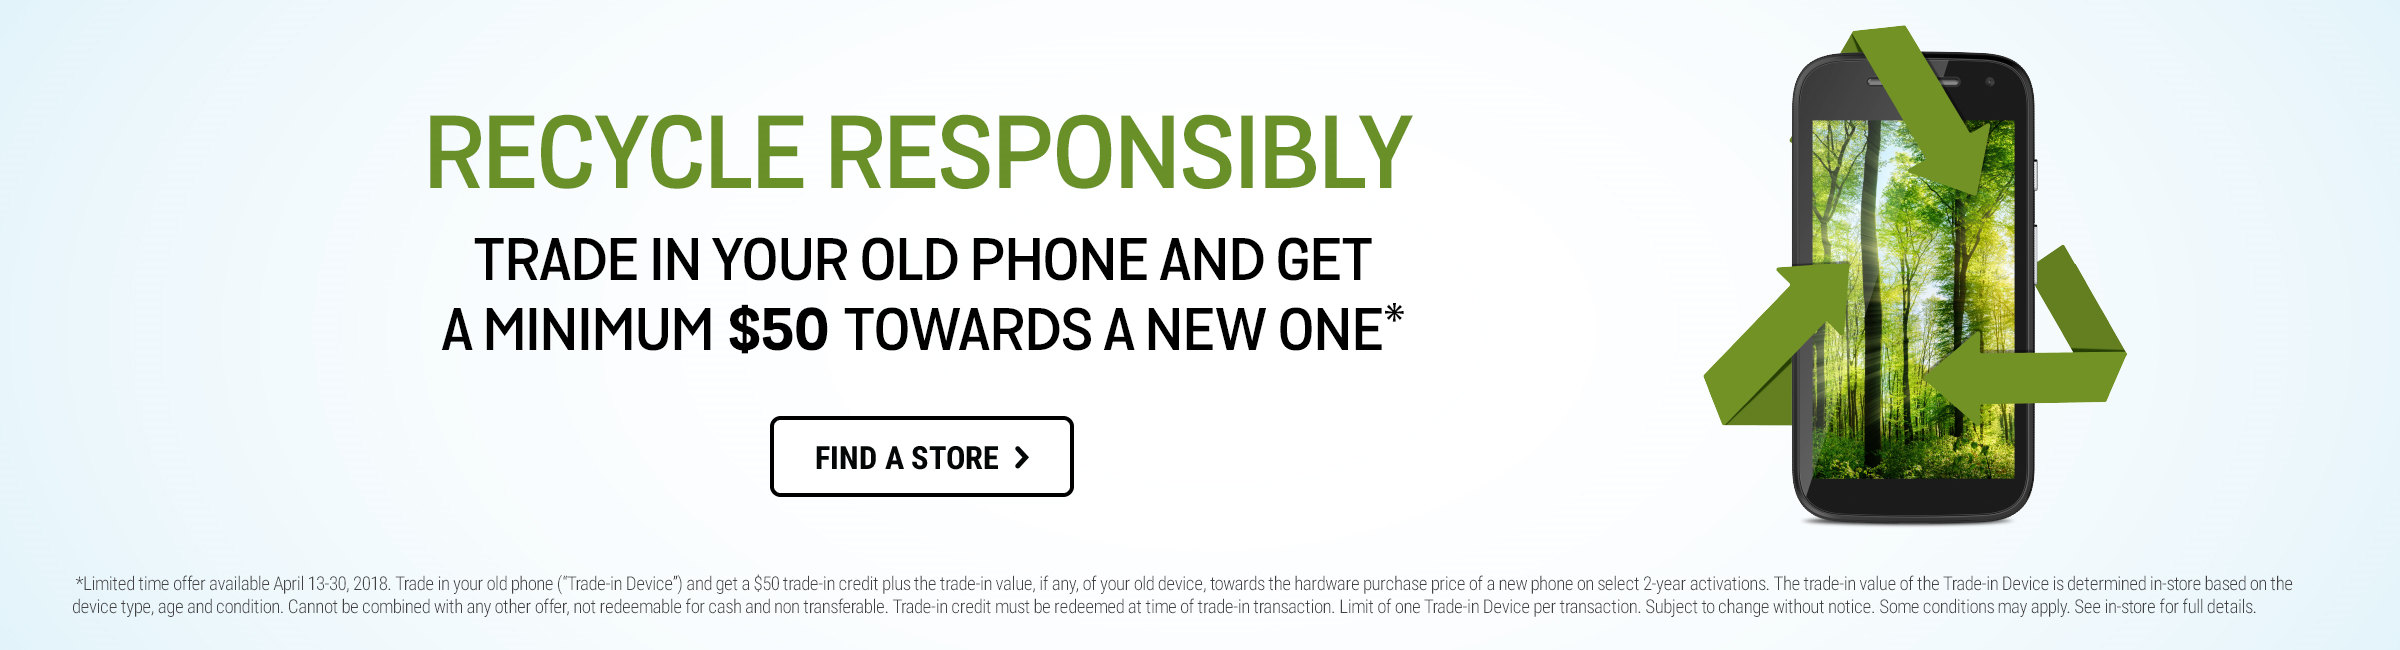 Trade in your old phone and get $50 towards a new one